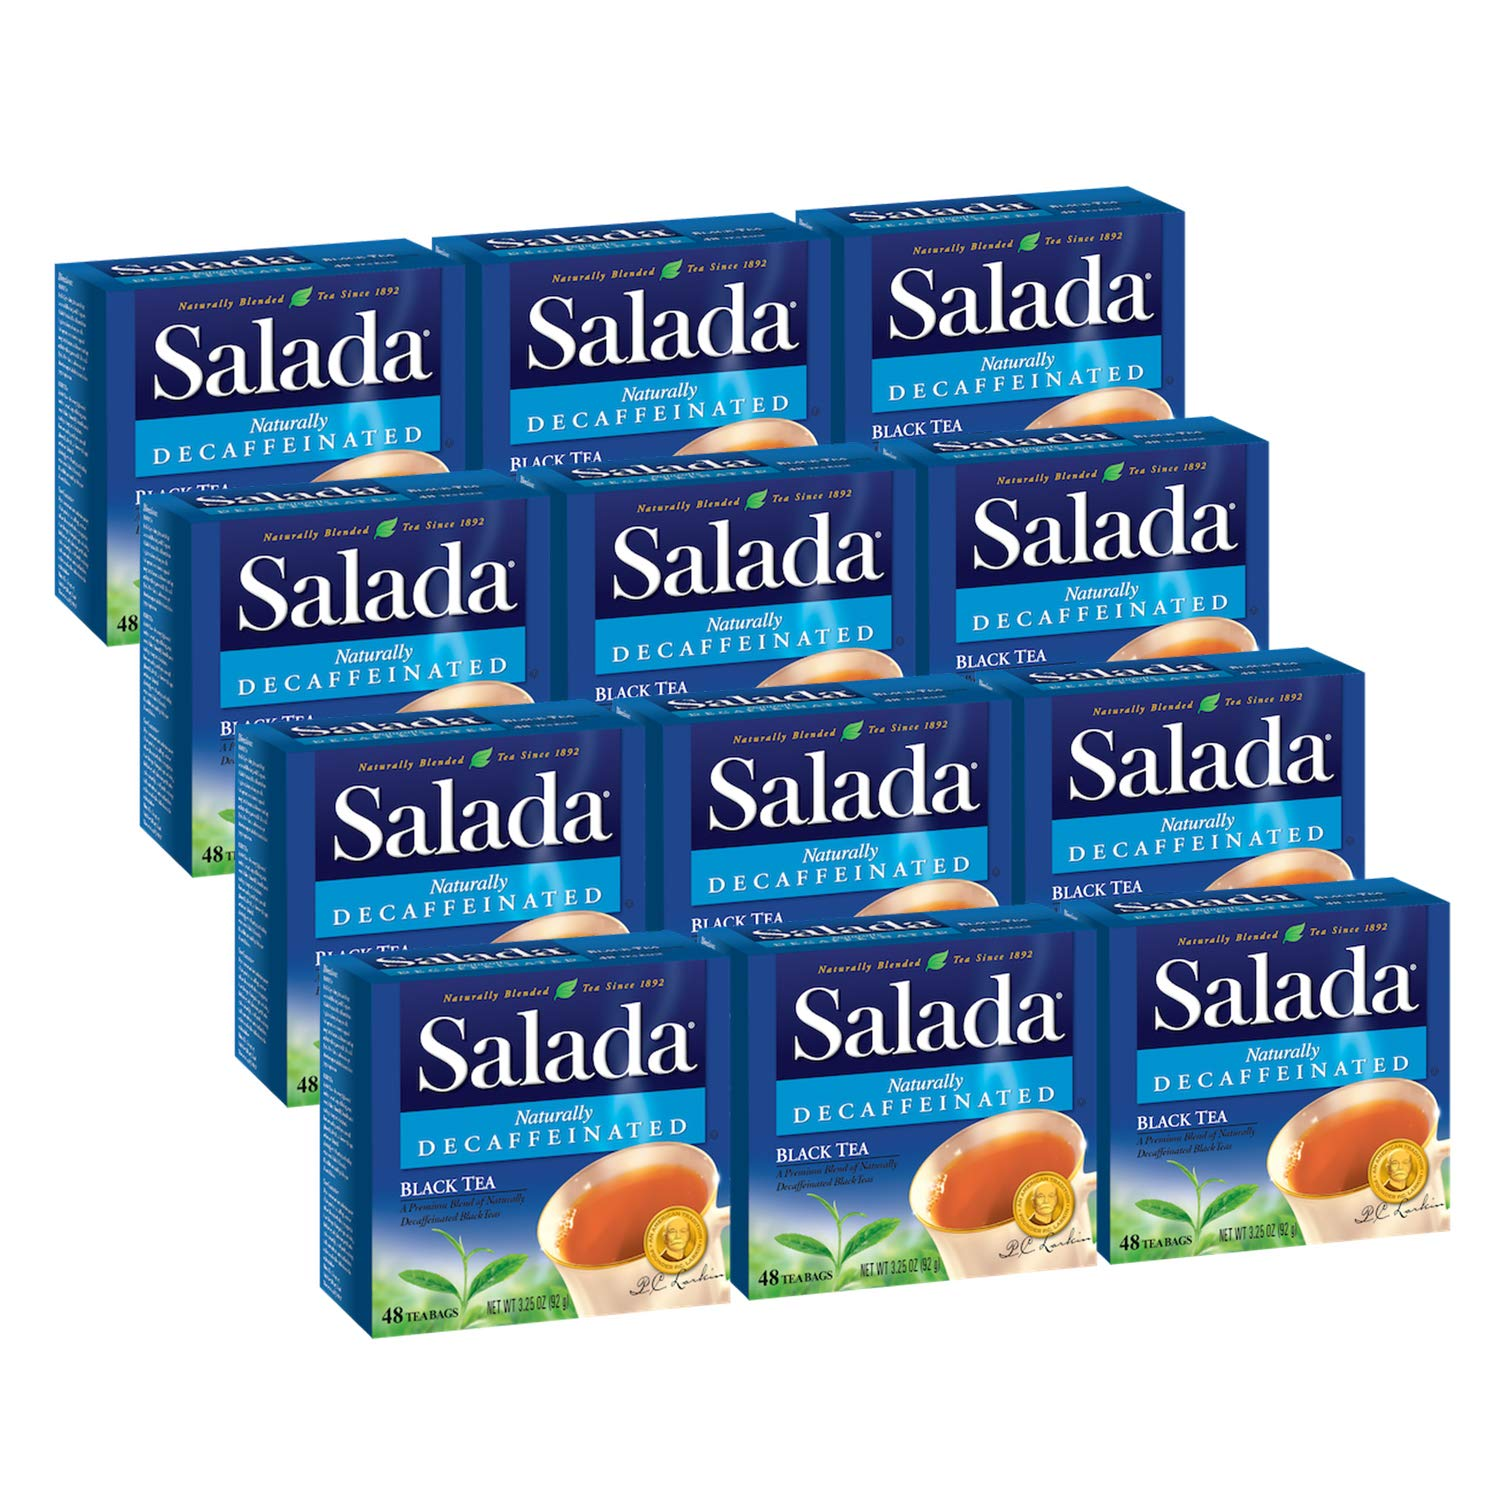 Salada Naturally Decaffeinated Black NEW before selling Luxury goods Bags 576 Tea Wrapped